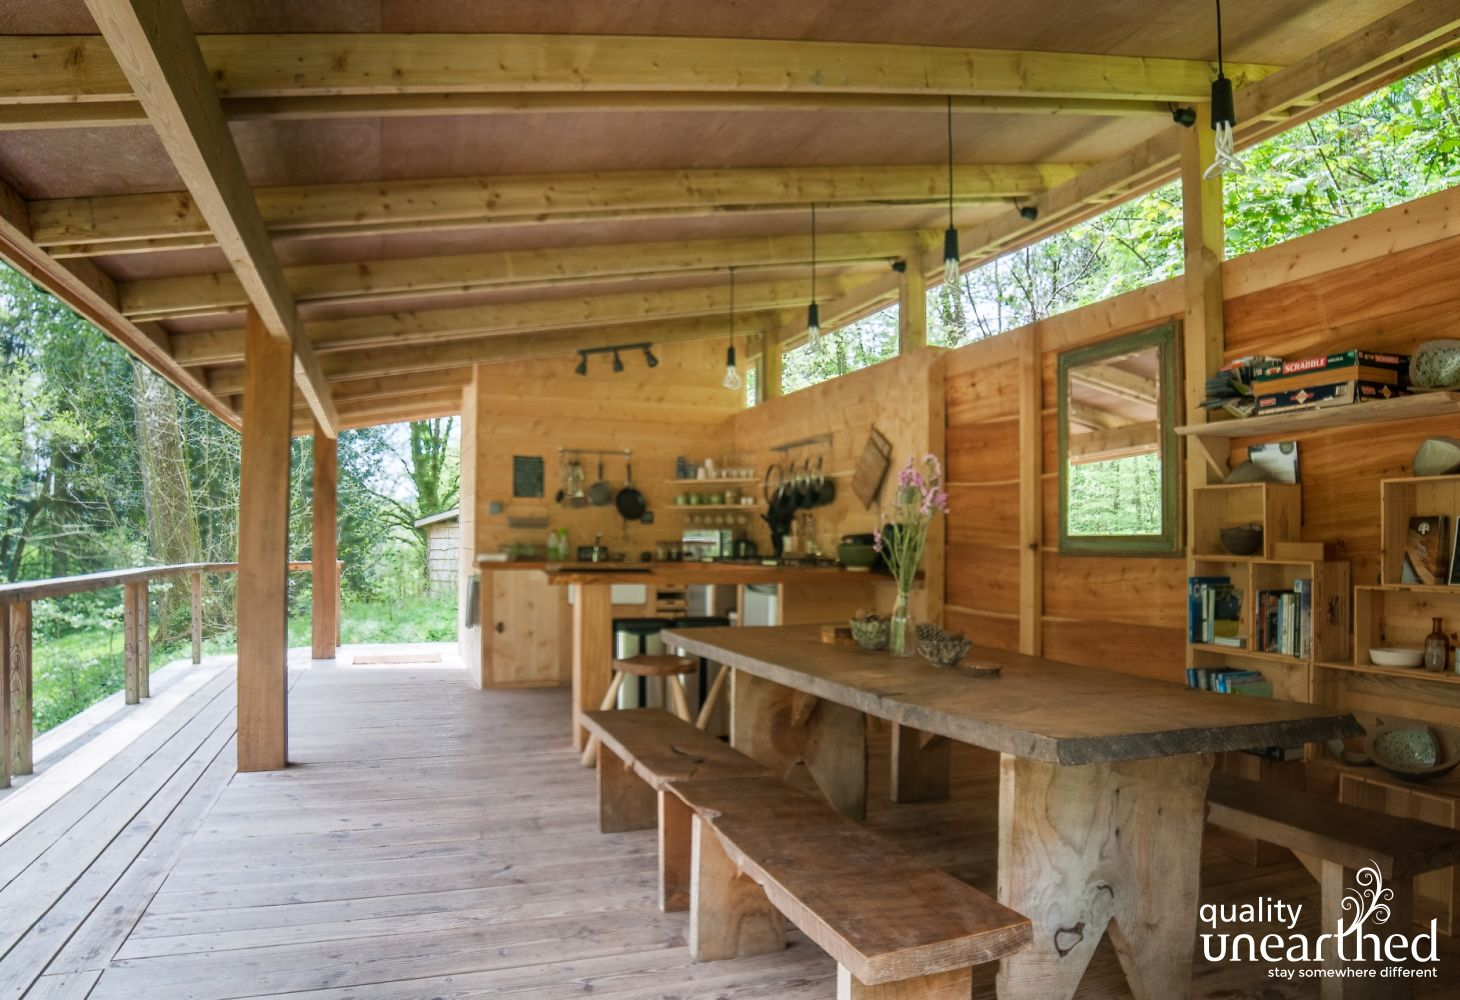 The communal dining area with a HUGE, handmade dining table, only 1 min from the family yurt